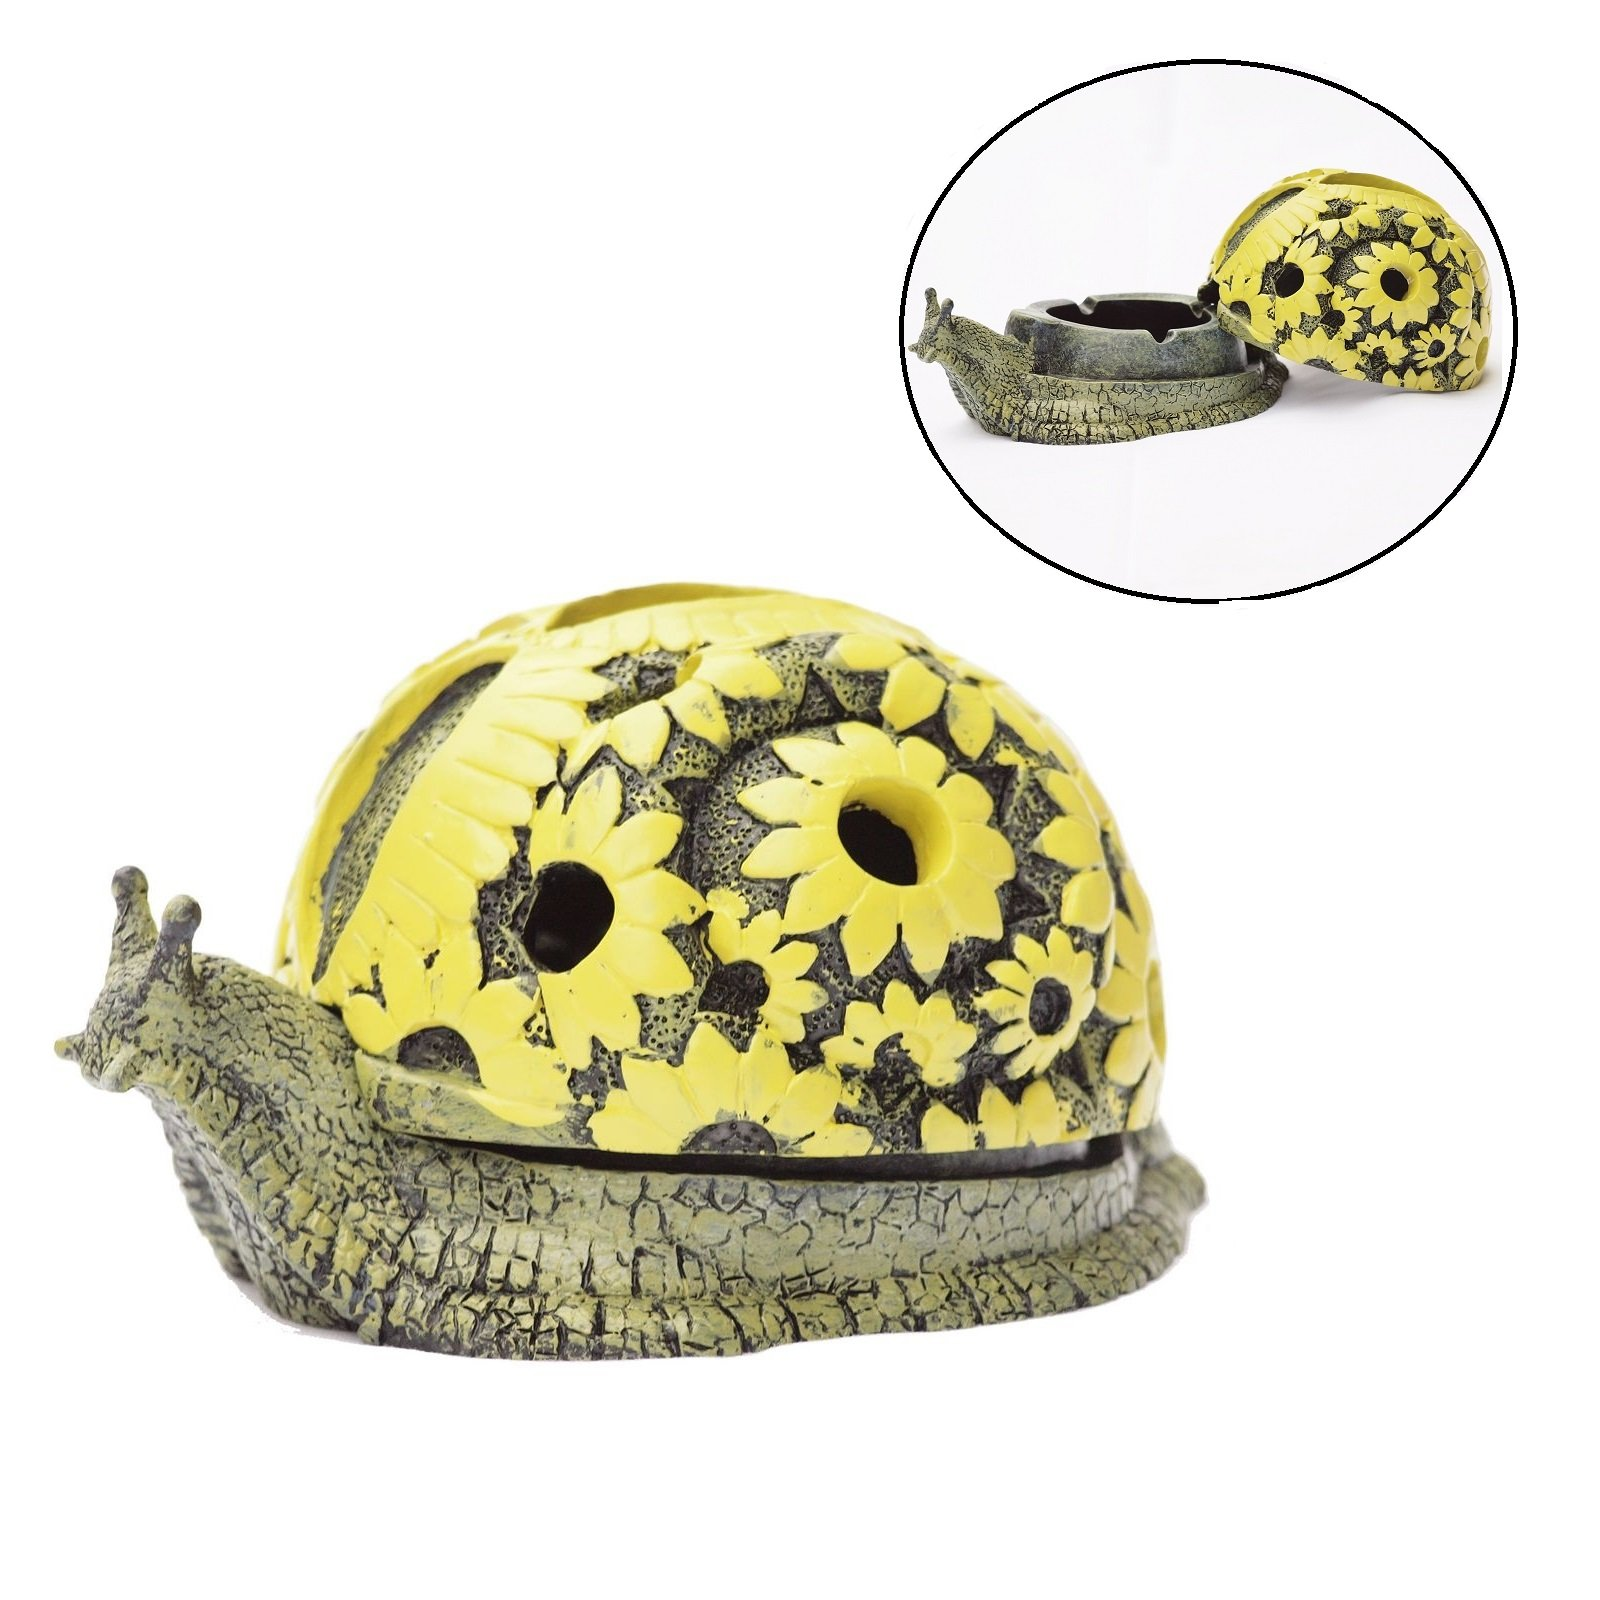 Greek Art Garden Decoration Snail Resin Key Hider Diversion Safe Key Outside Hider Hide-A-Key Holder Safely Hiding Your Spare Keys for Outdoor Garden or Yard, Geocaching